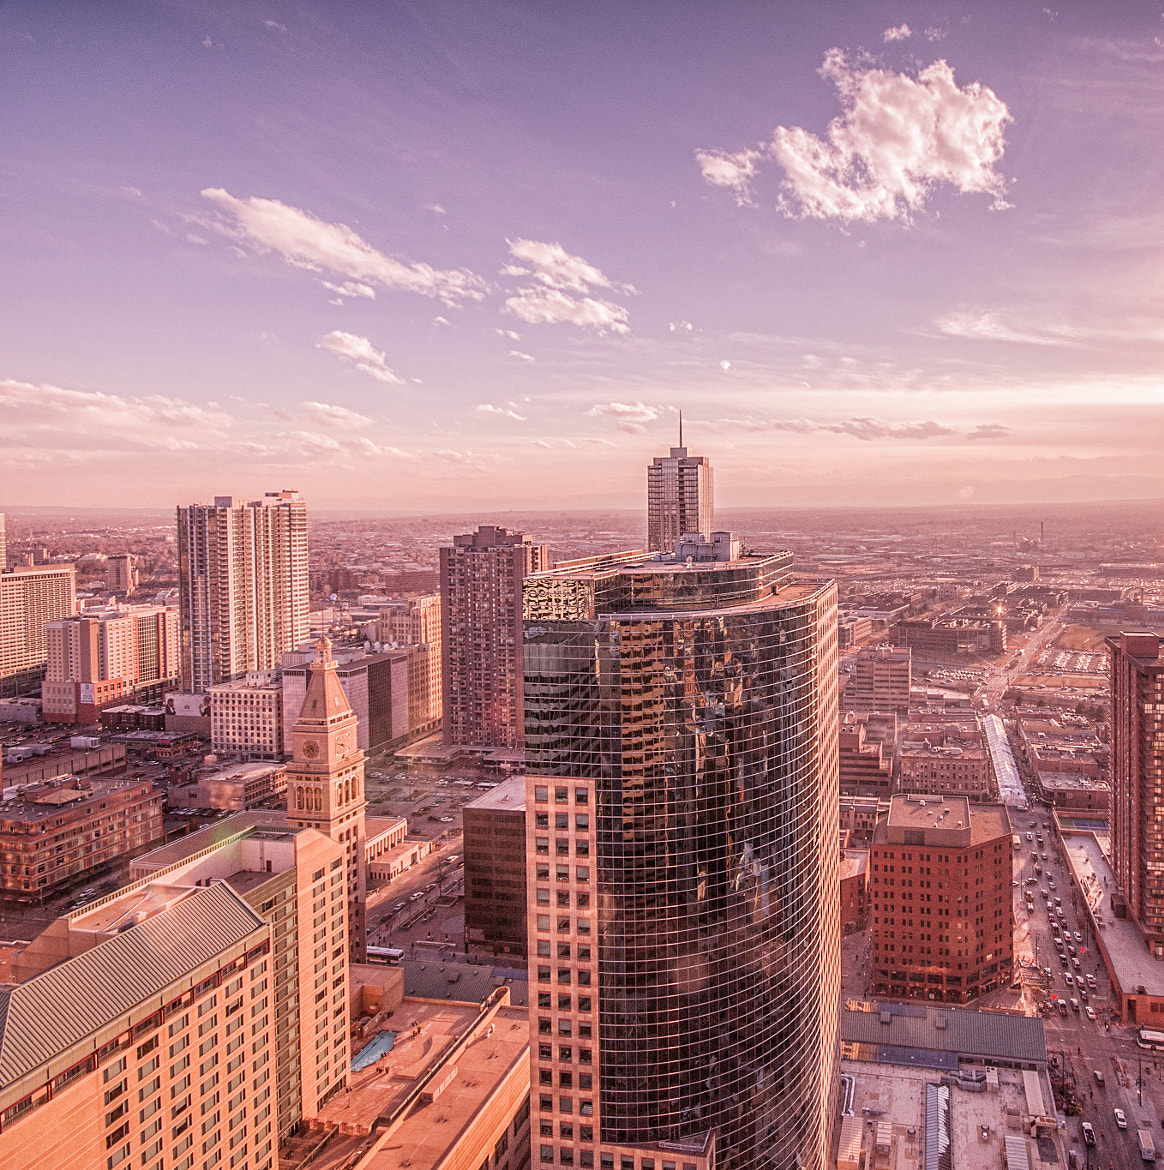 Photograph MILE HIGH CITY by WilsonAxpe /  Scott Wilson on 500px